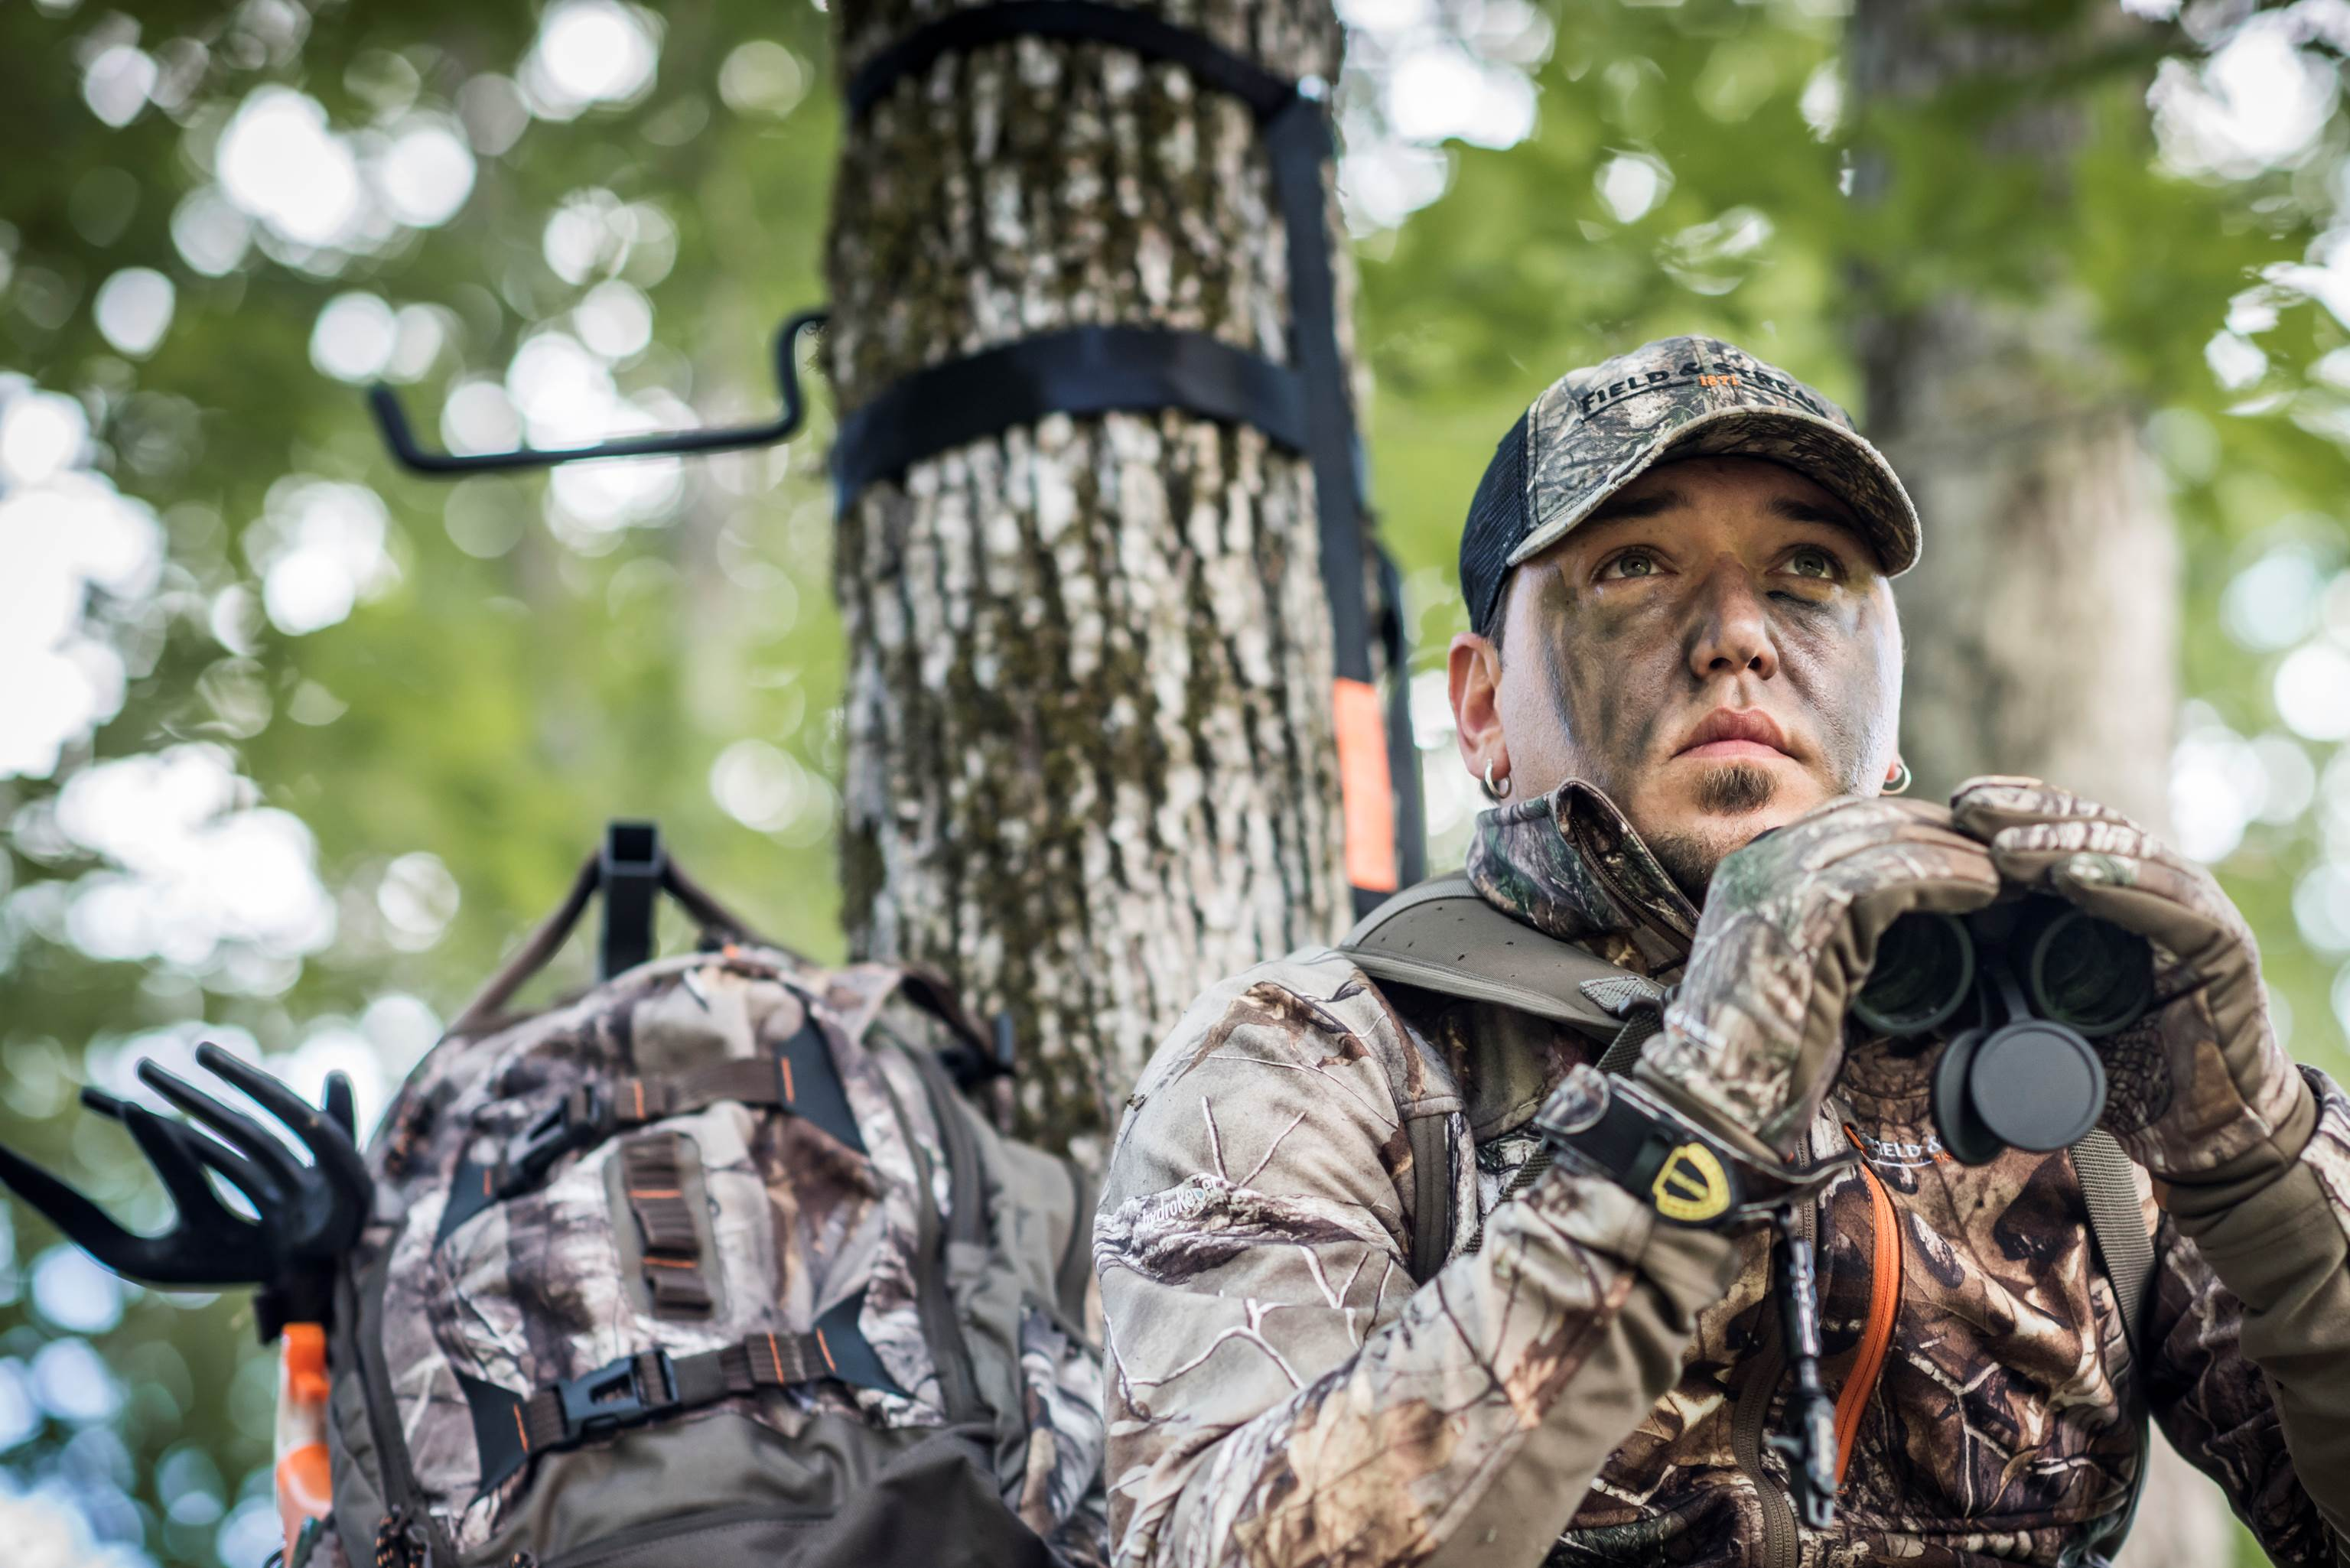 JASON IS THE NEW FIELD & STREAM BRAND AMBASSADOR